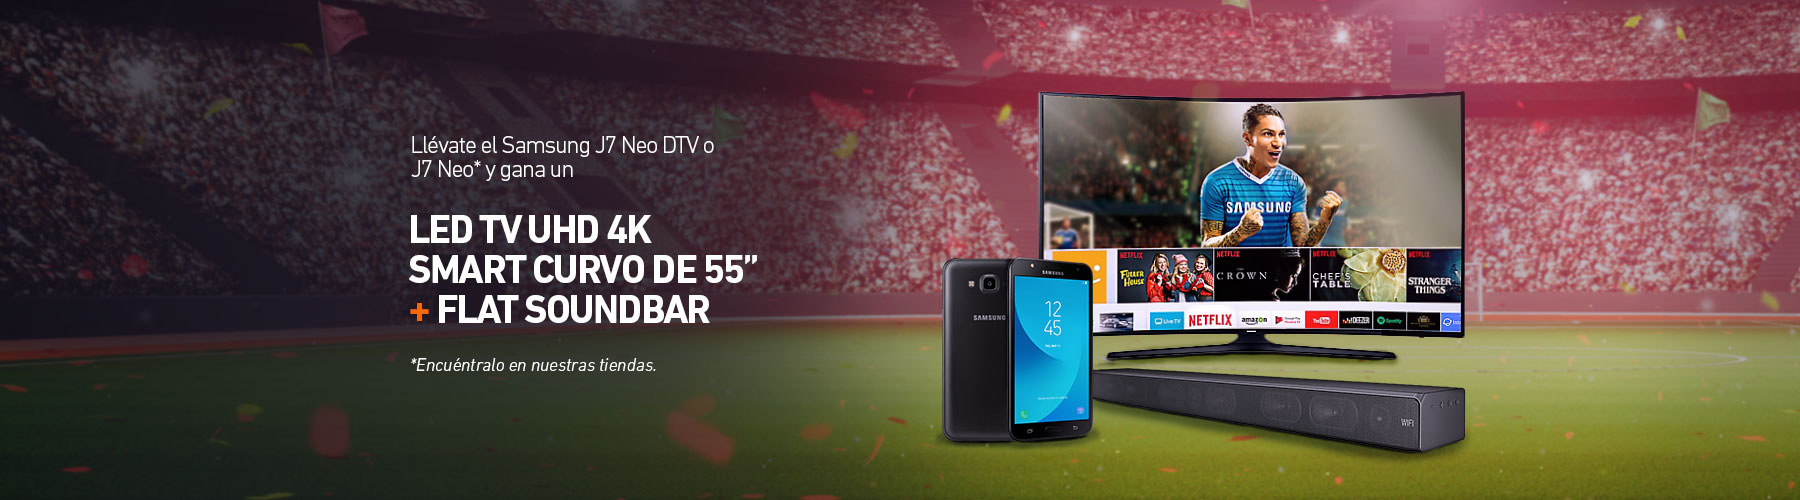 ¡Mira TV Digital en VIVO!